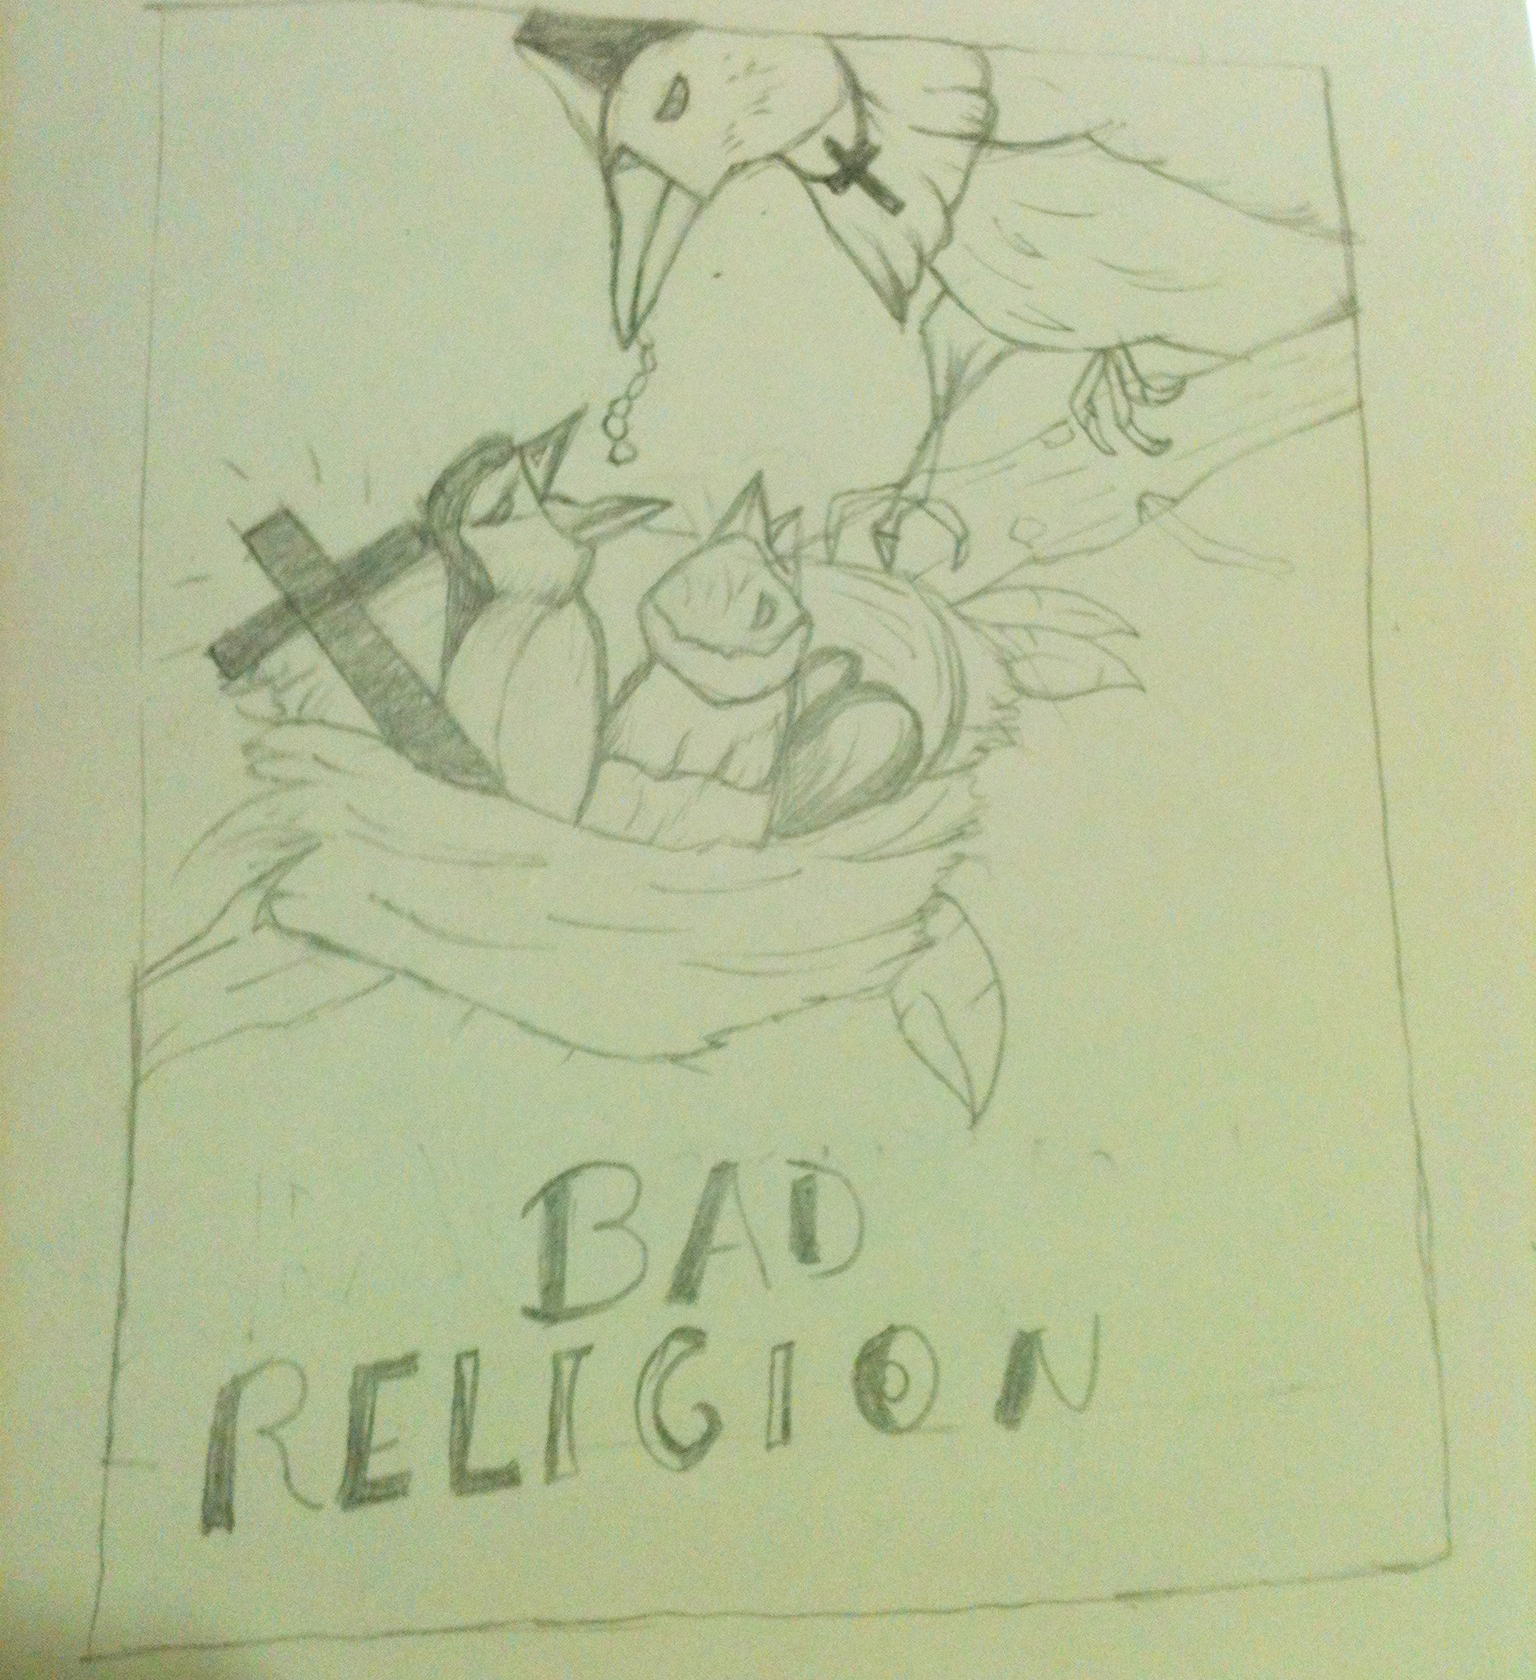 Bad Religion Poster - image 5 - student project